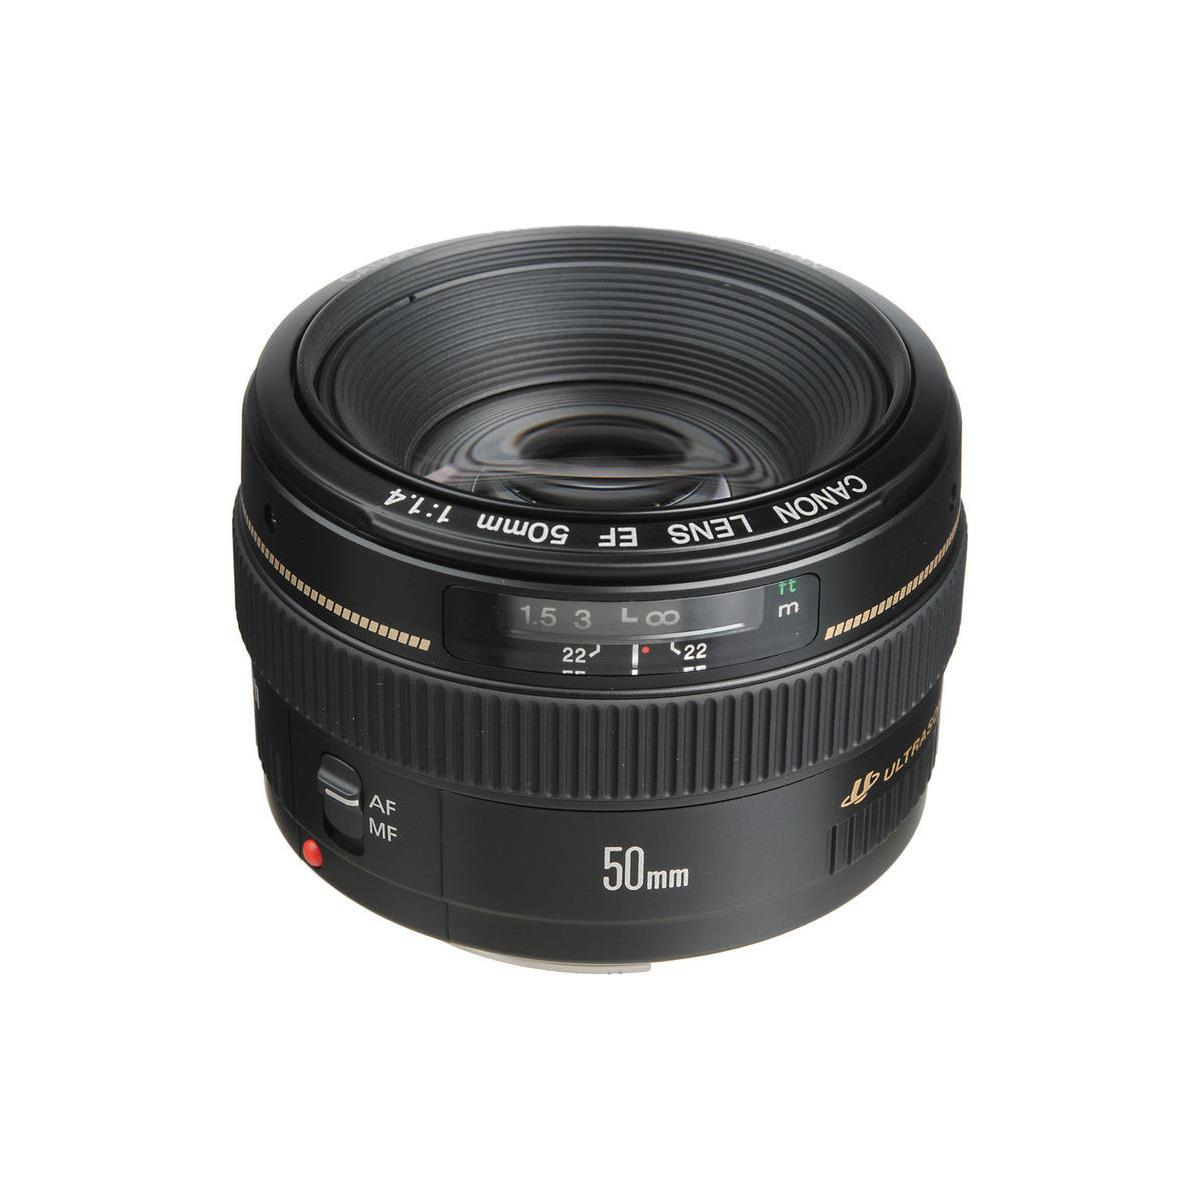 Canon 50mm f/1.4 best lens for event photography  sc 1 st  Adorama & Best Lenses for Event Photography - ALC azcodes.com